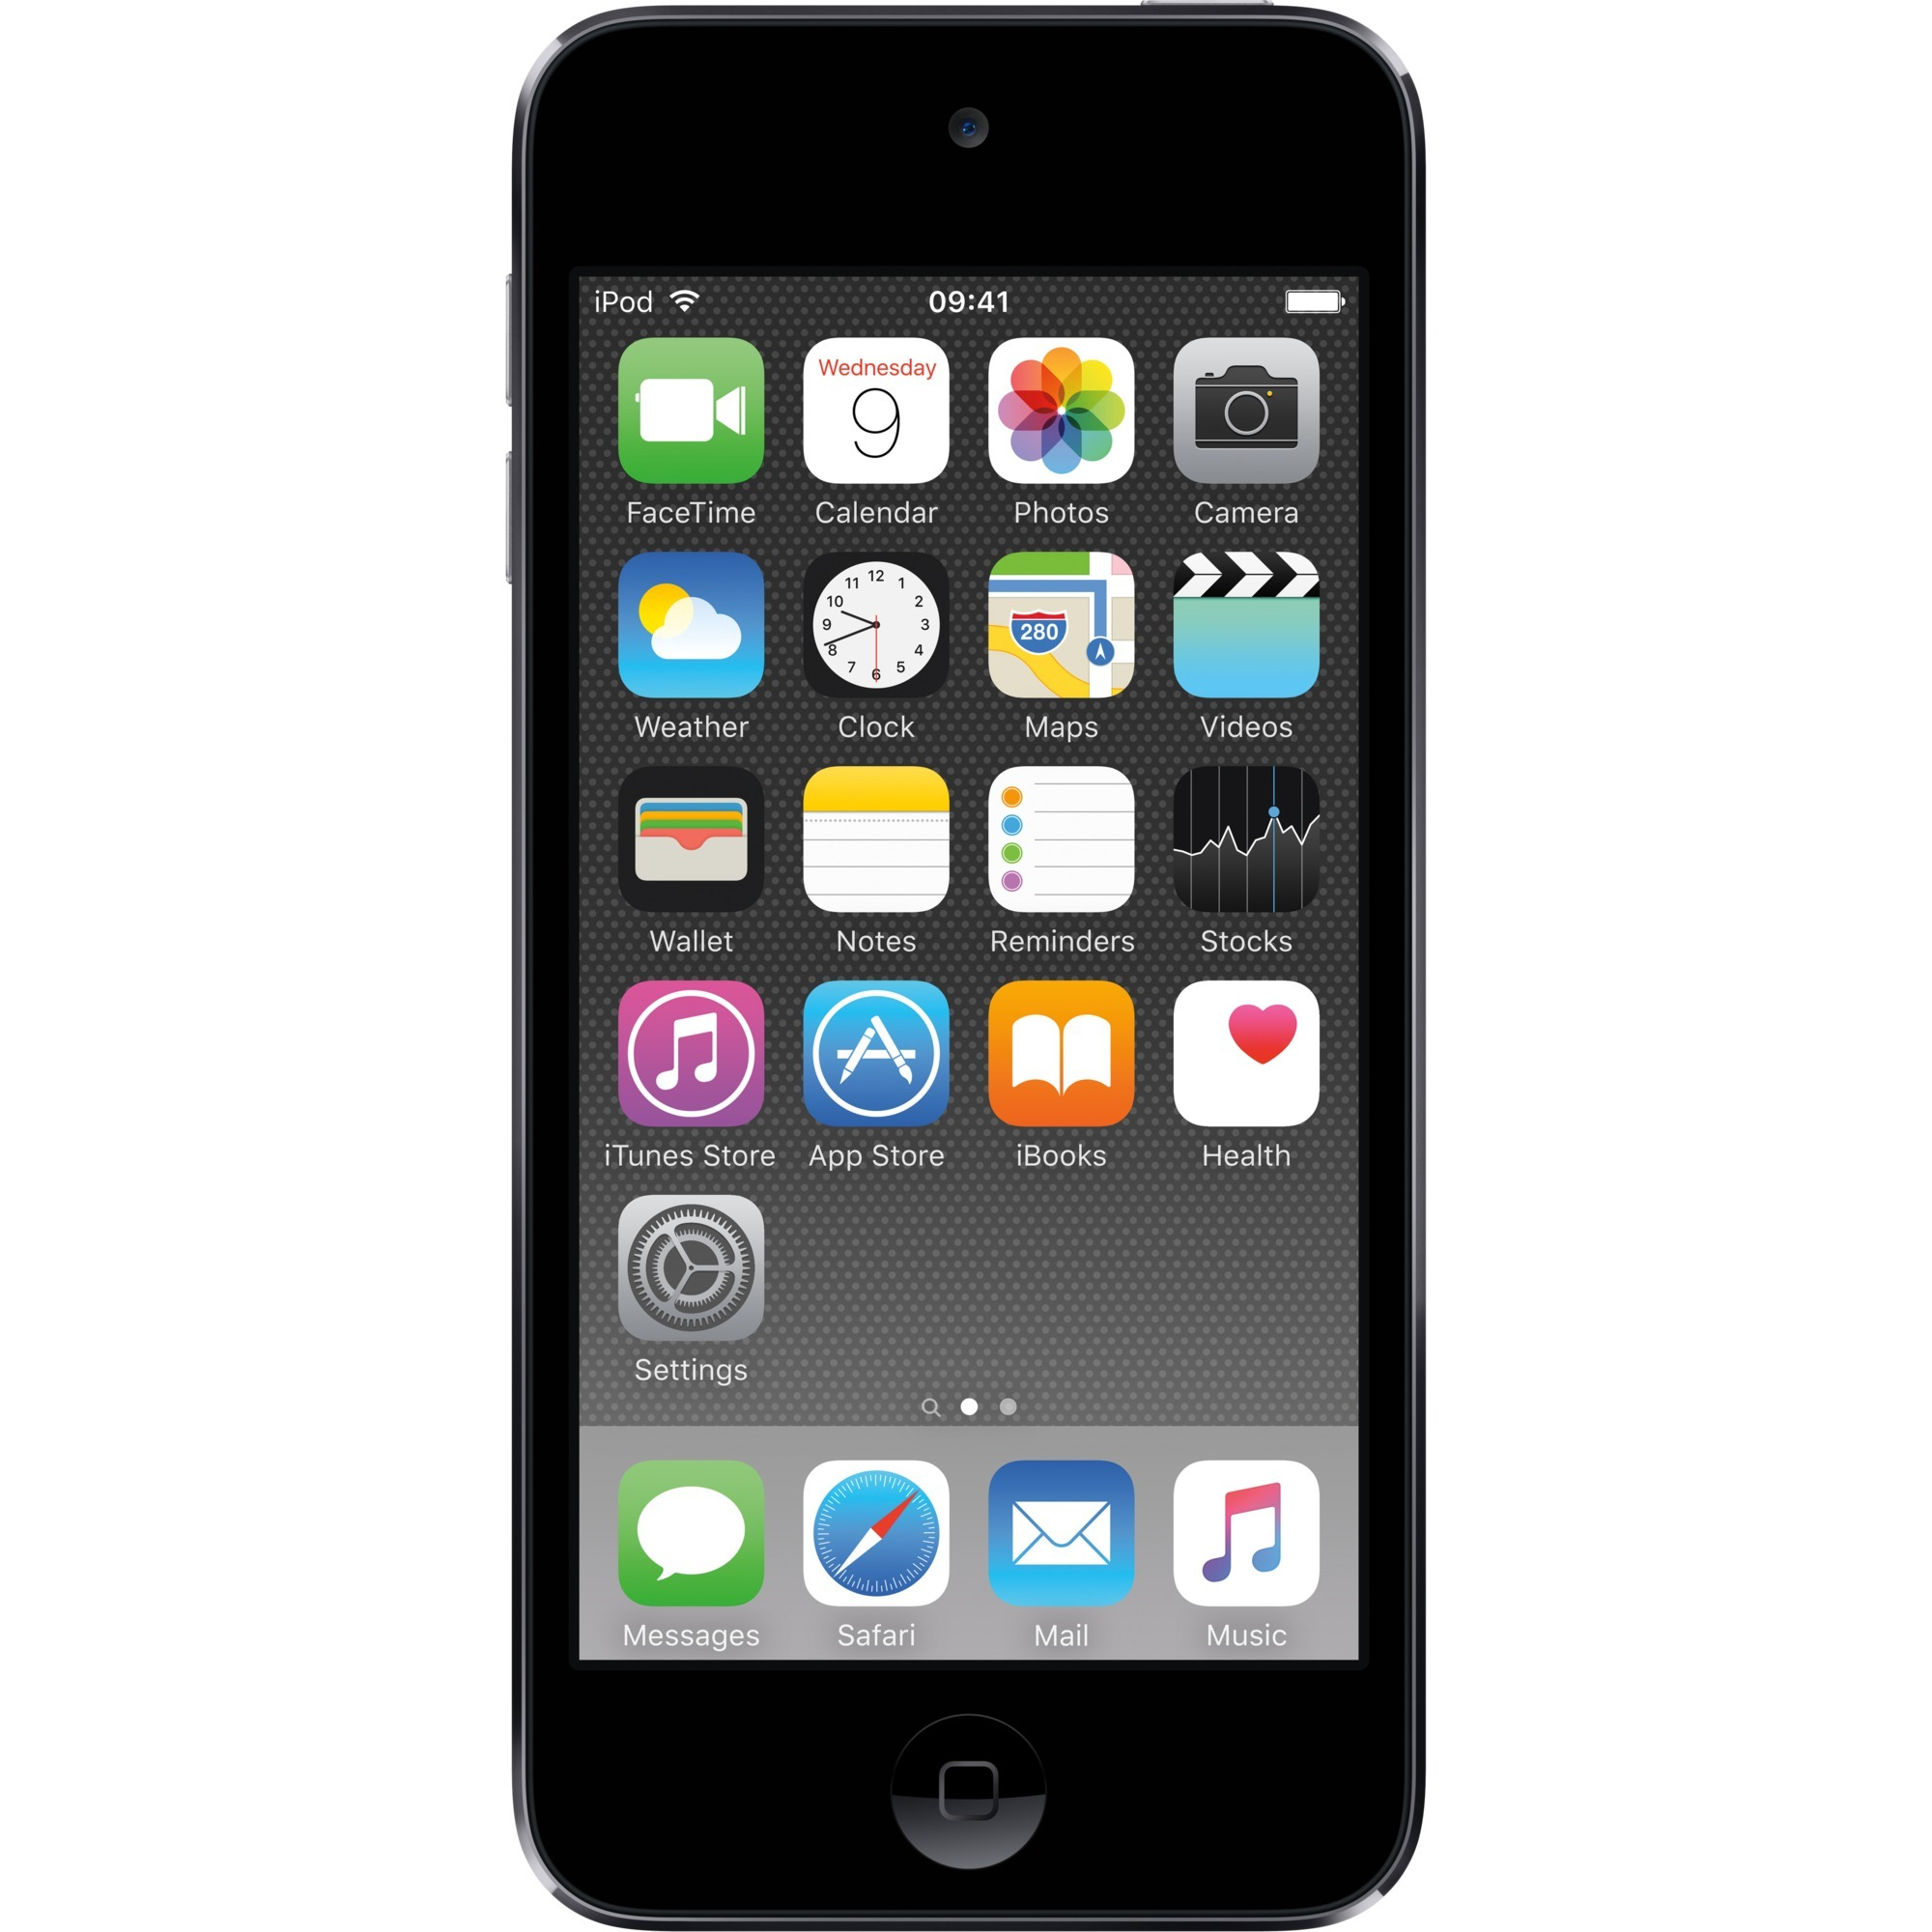 iPod touch 128GB Reproductor de MP4 128GB Gris, Reproductor MVP